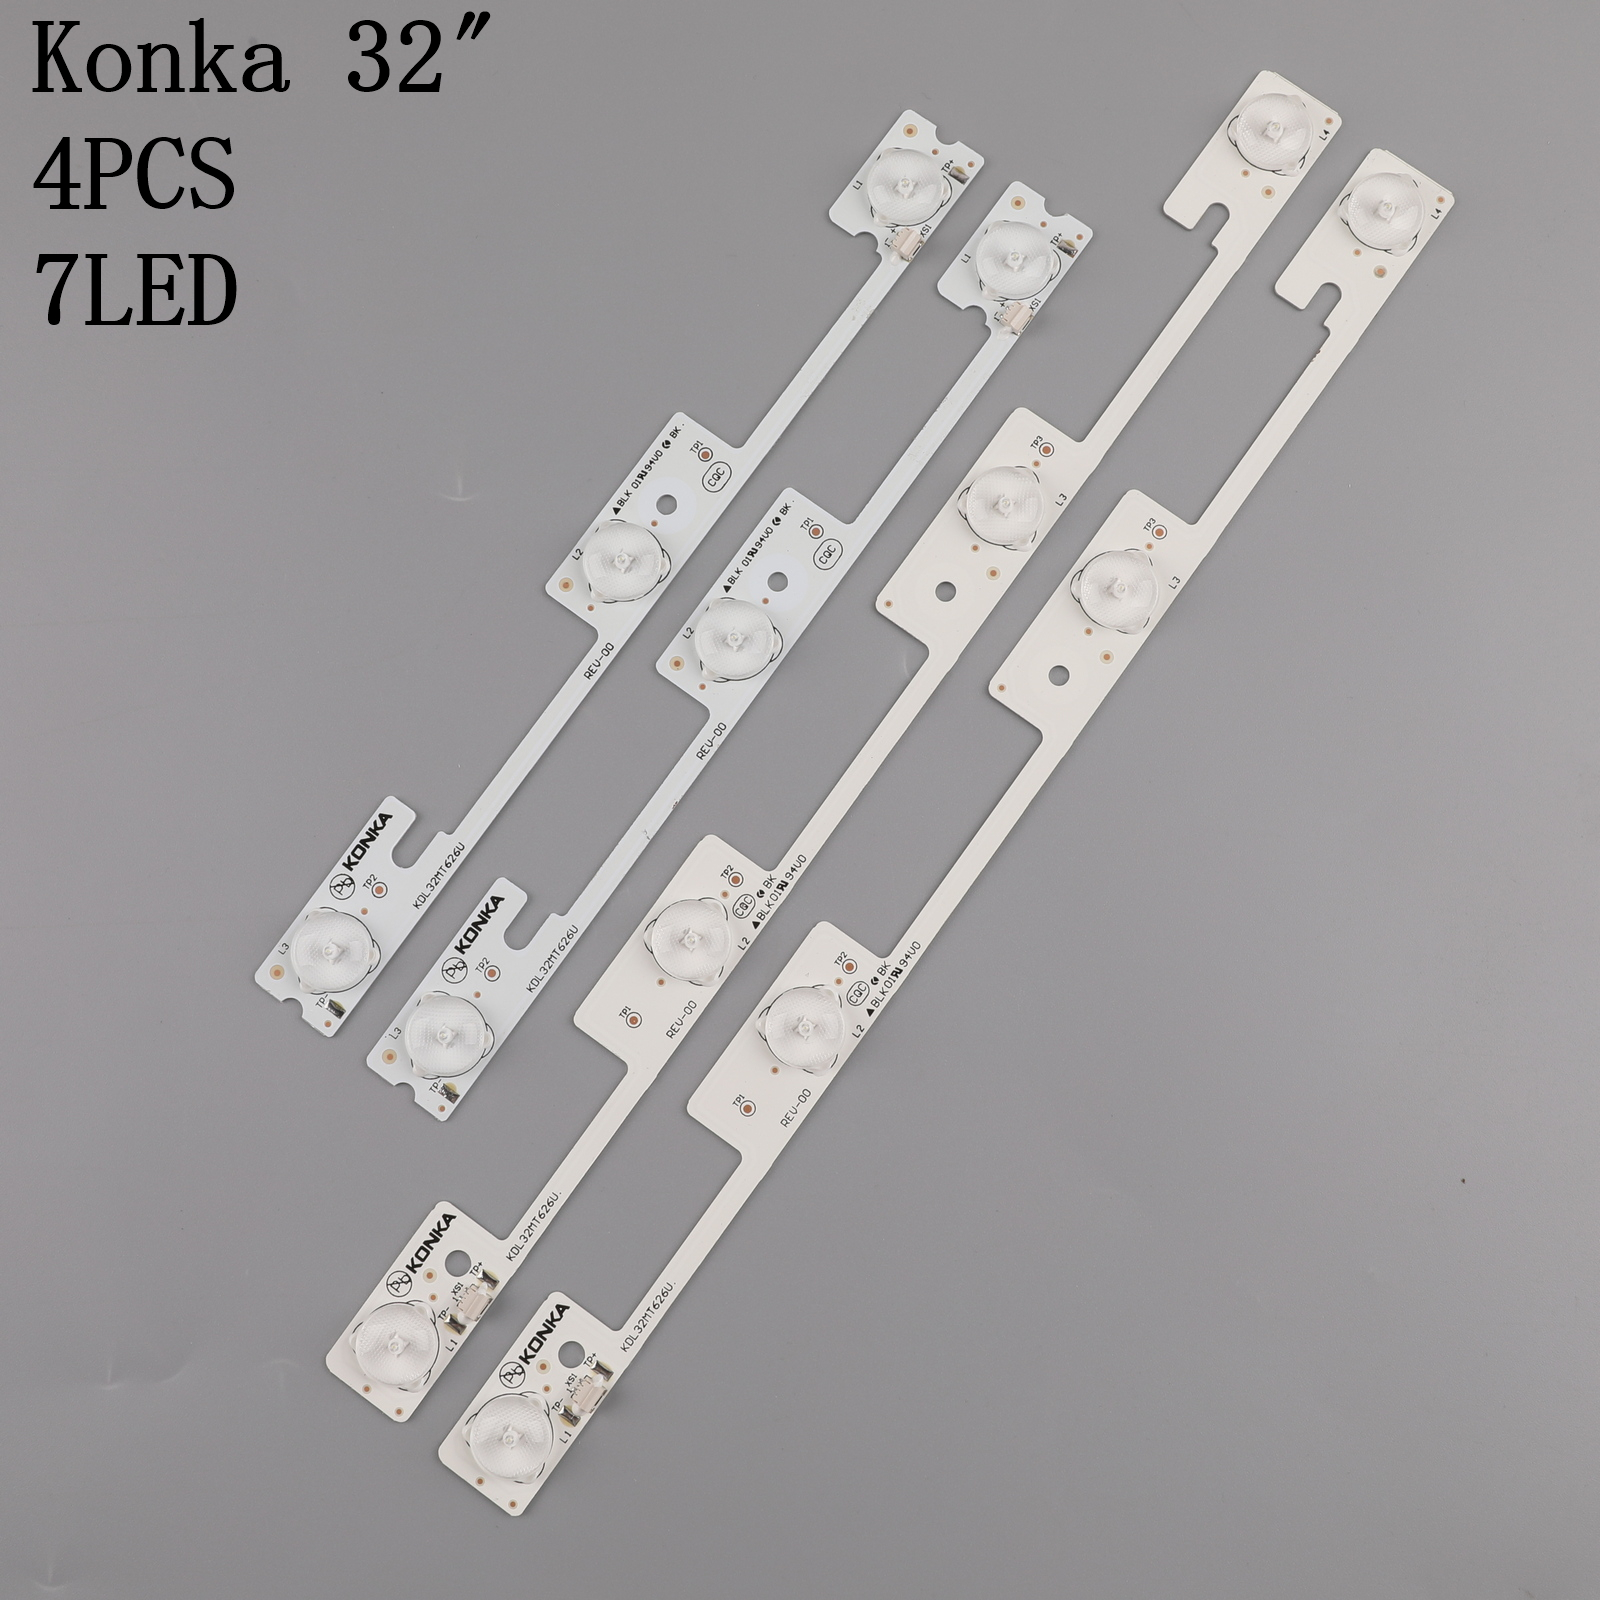 20pcs original for Konka KDL32MT626U 10PCS 4LED amp 10PCS 3LED 35019055 35019056 light bar 32 inch backlight lamp LED strip 6v